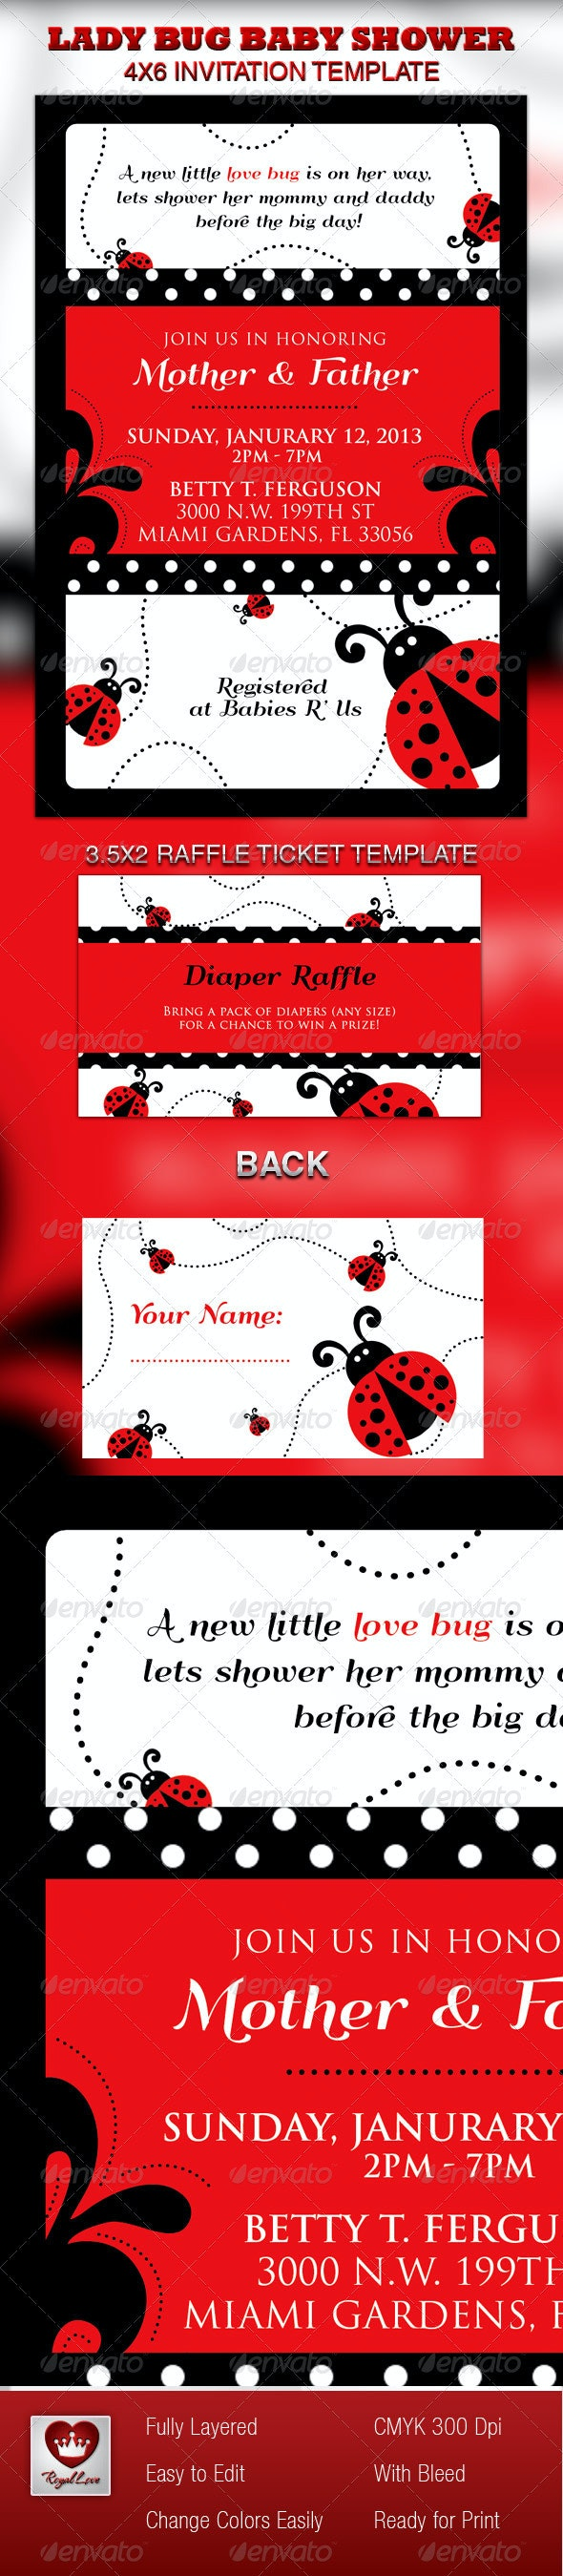 Lady Bug Baby Shower Invitation & Raffle Ticket - Invitations Cards & Invites